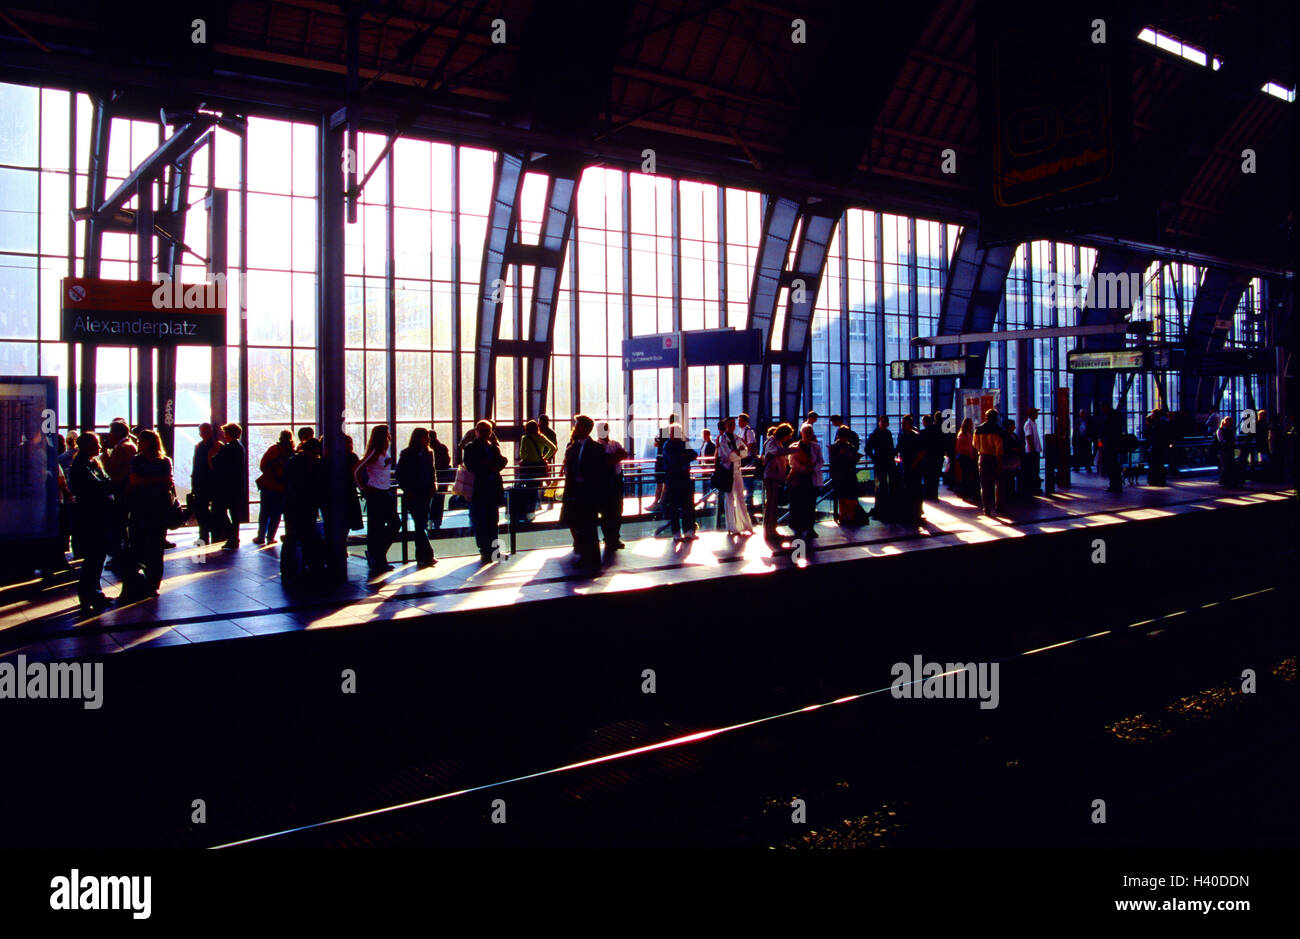 Station hall, window front, platform, passengers, back light, railway station, hall, occupational commuter, travellers, - Stock Image